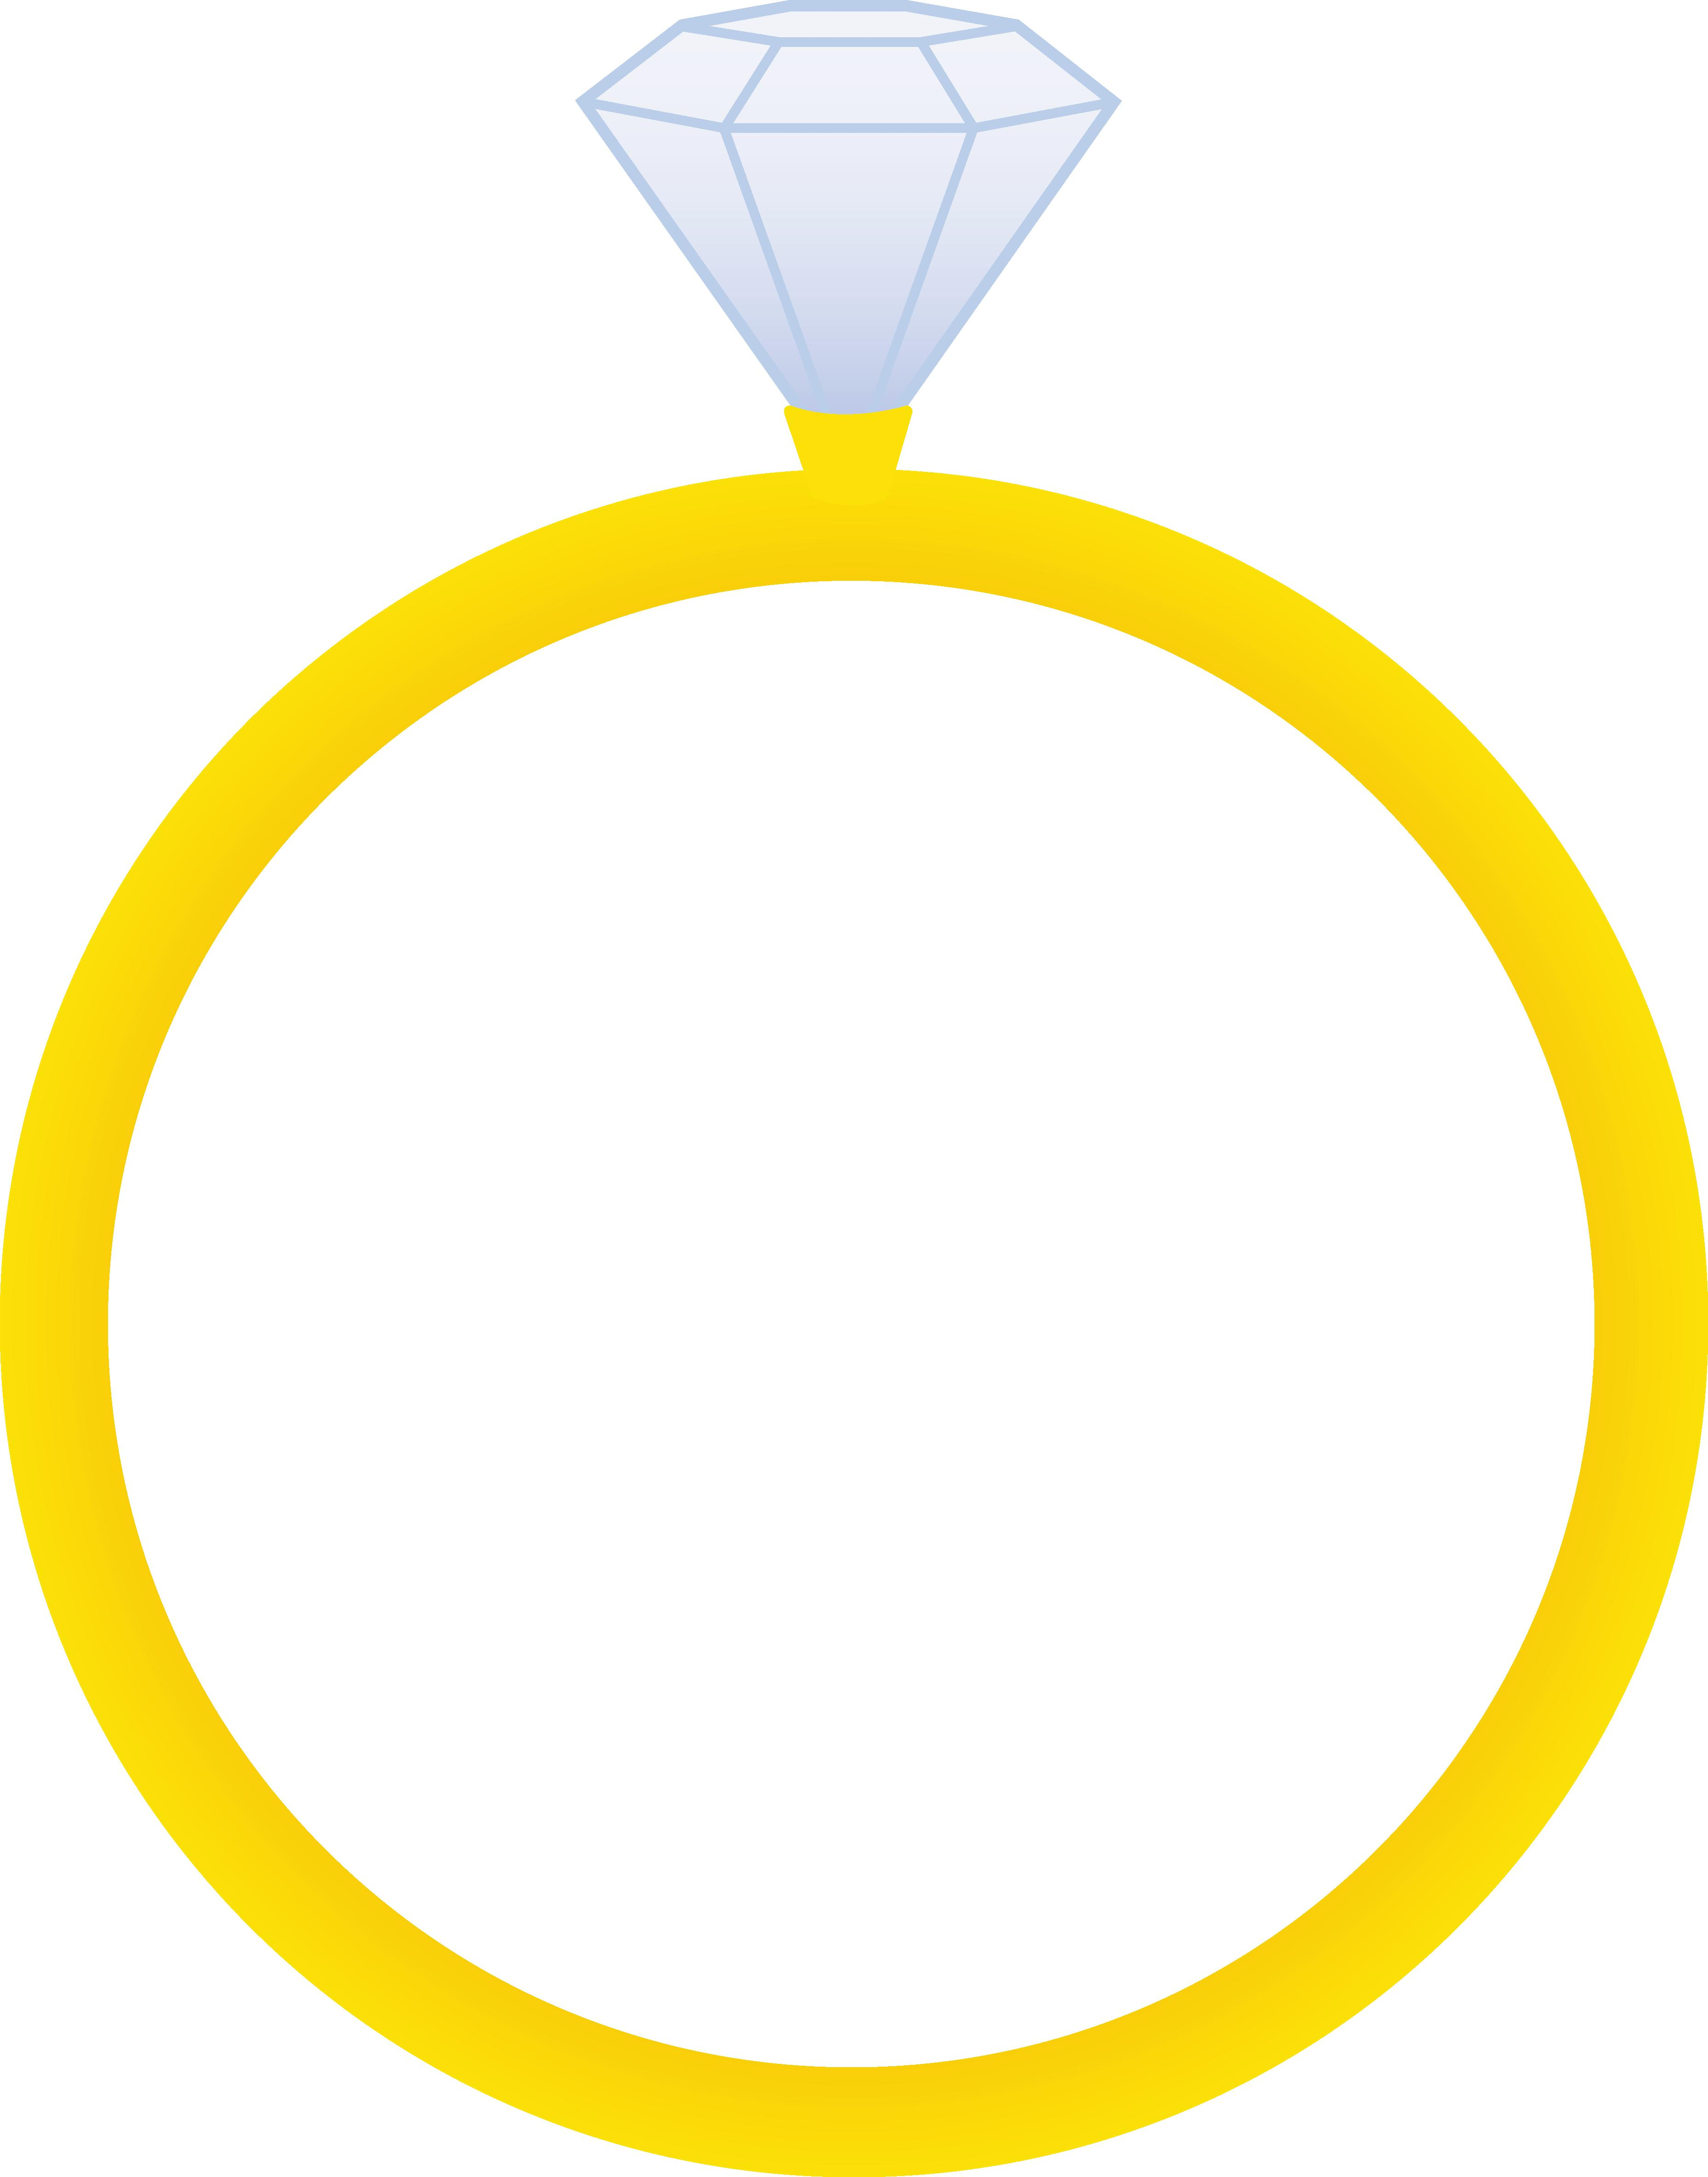 Diamond ring clip art free clipart images 6